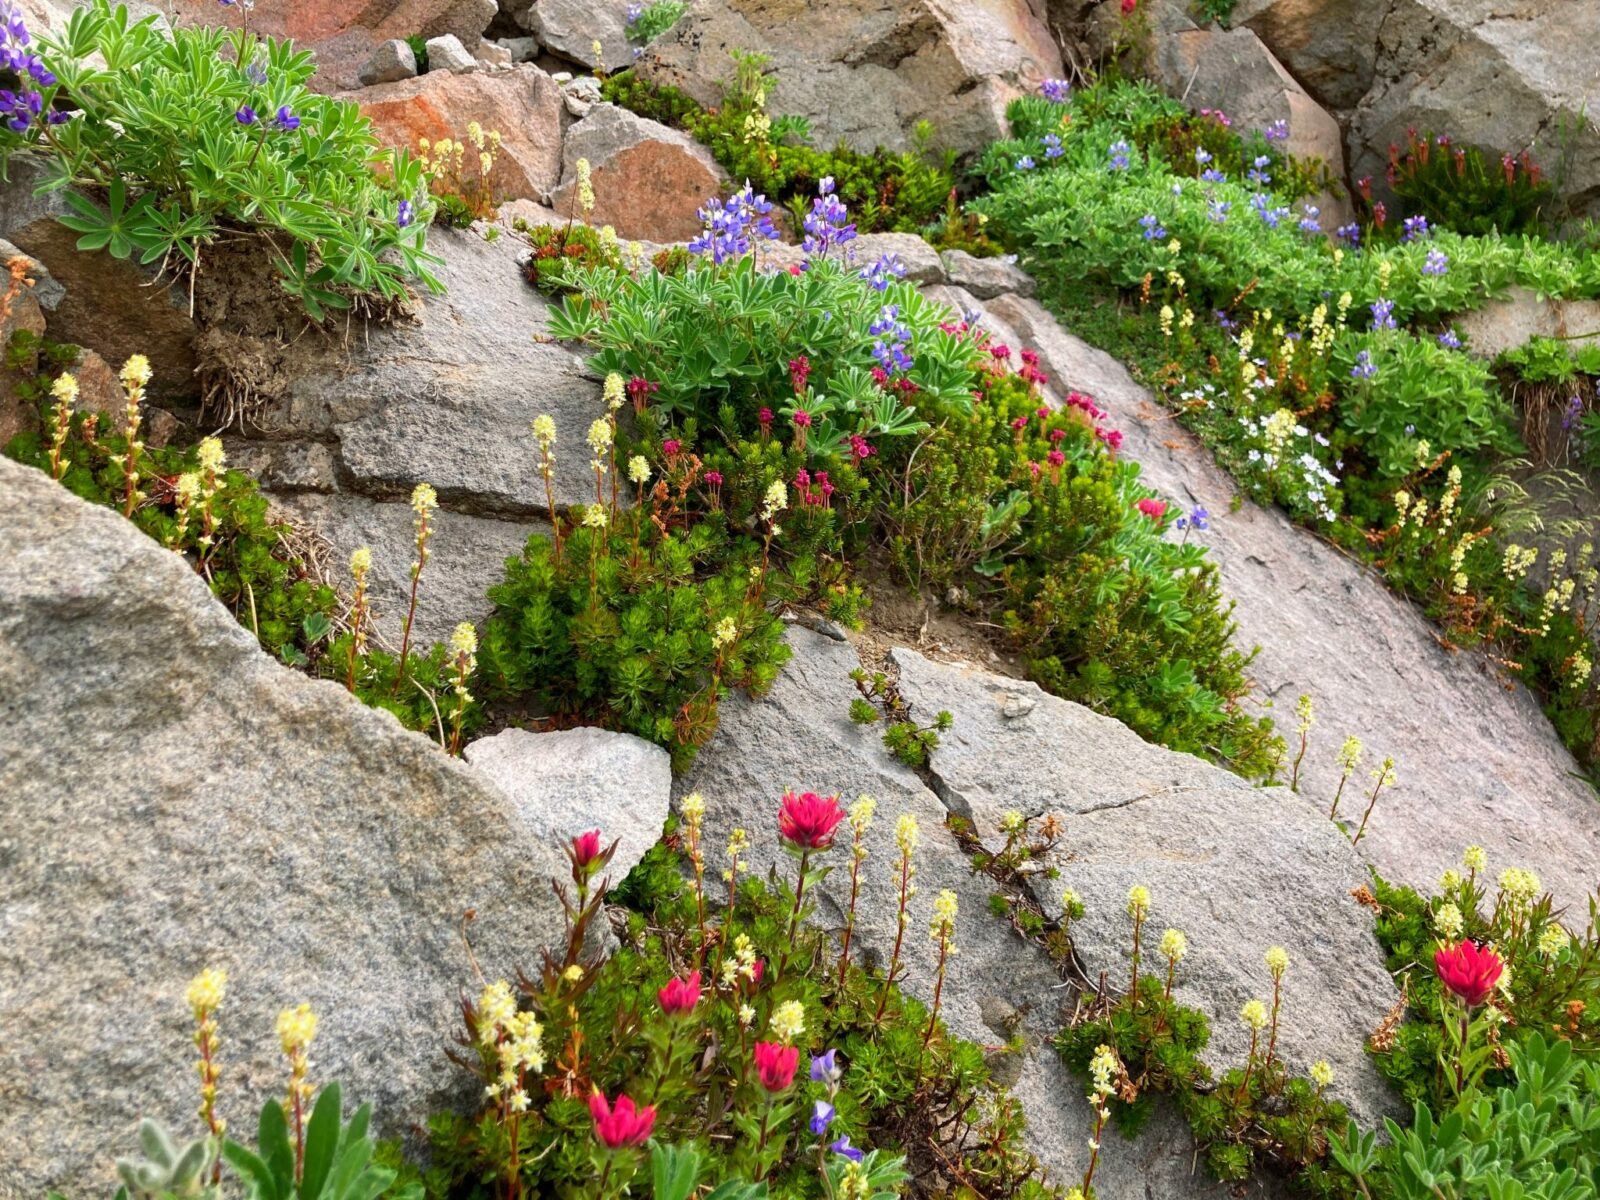 Wildflowers grow around rocks along the Skyline Trail in Mt Rainier National Park. There are magenta, white and purple flowers with green bushes around them